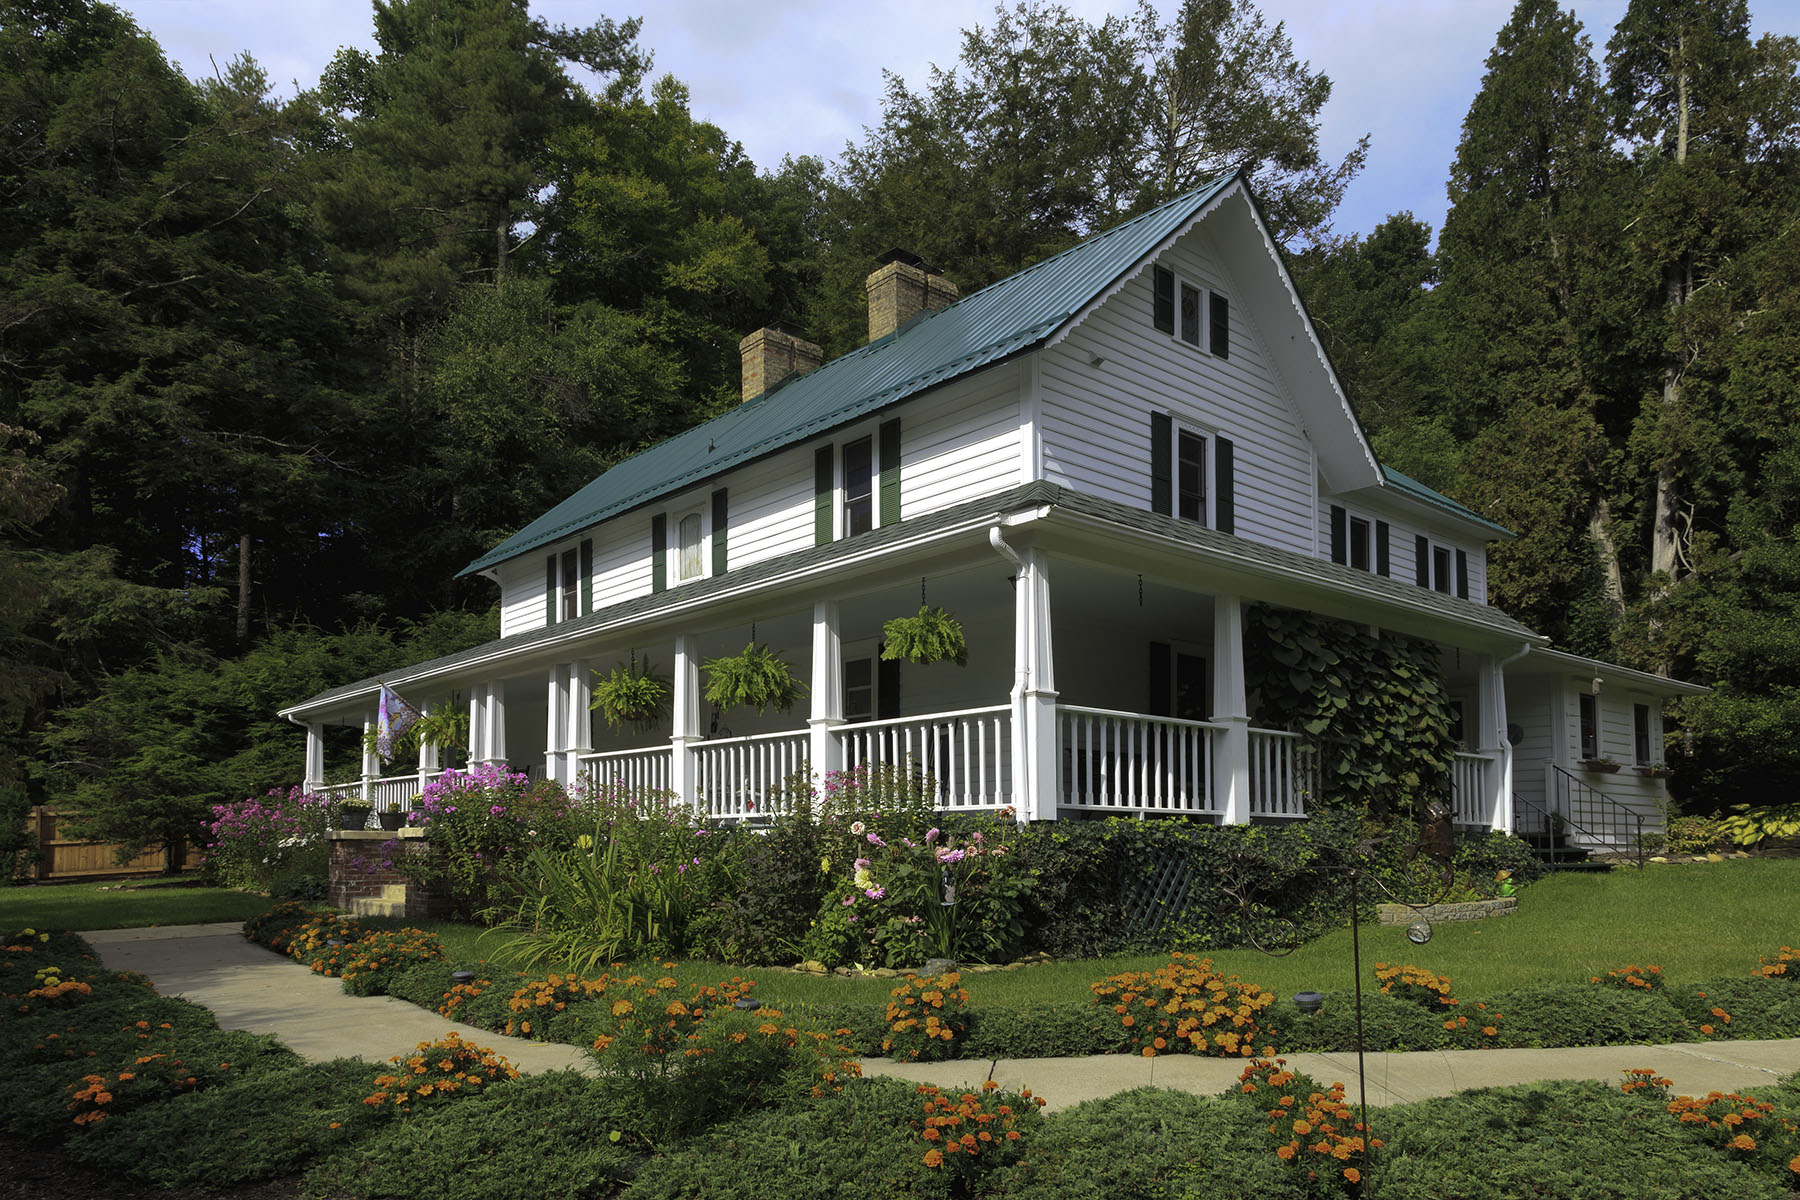 Single Family Homes for Active at 404 Old Bristol Rd Boone, North Carolina 28607 United States